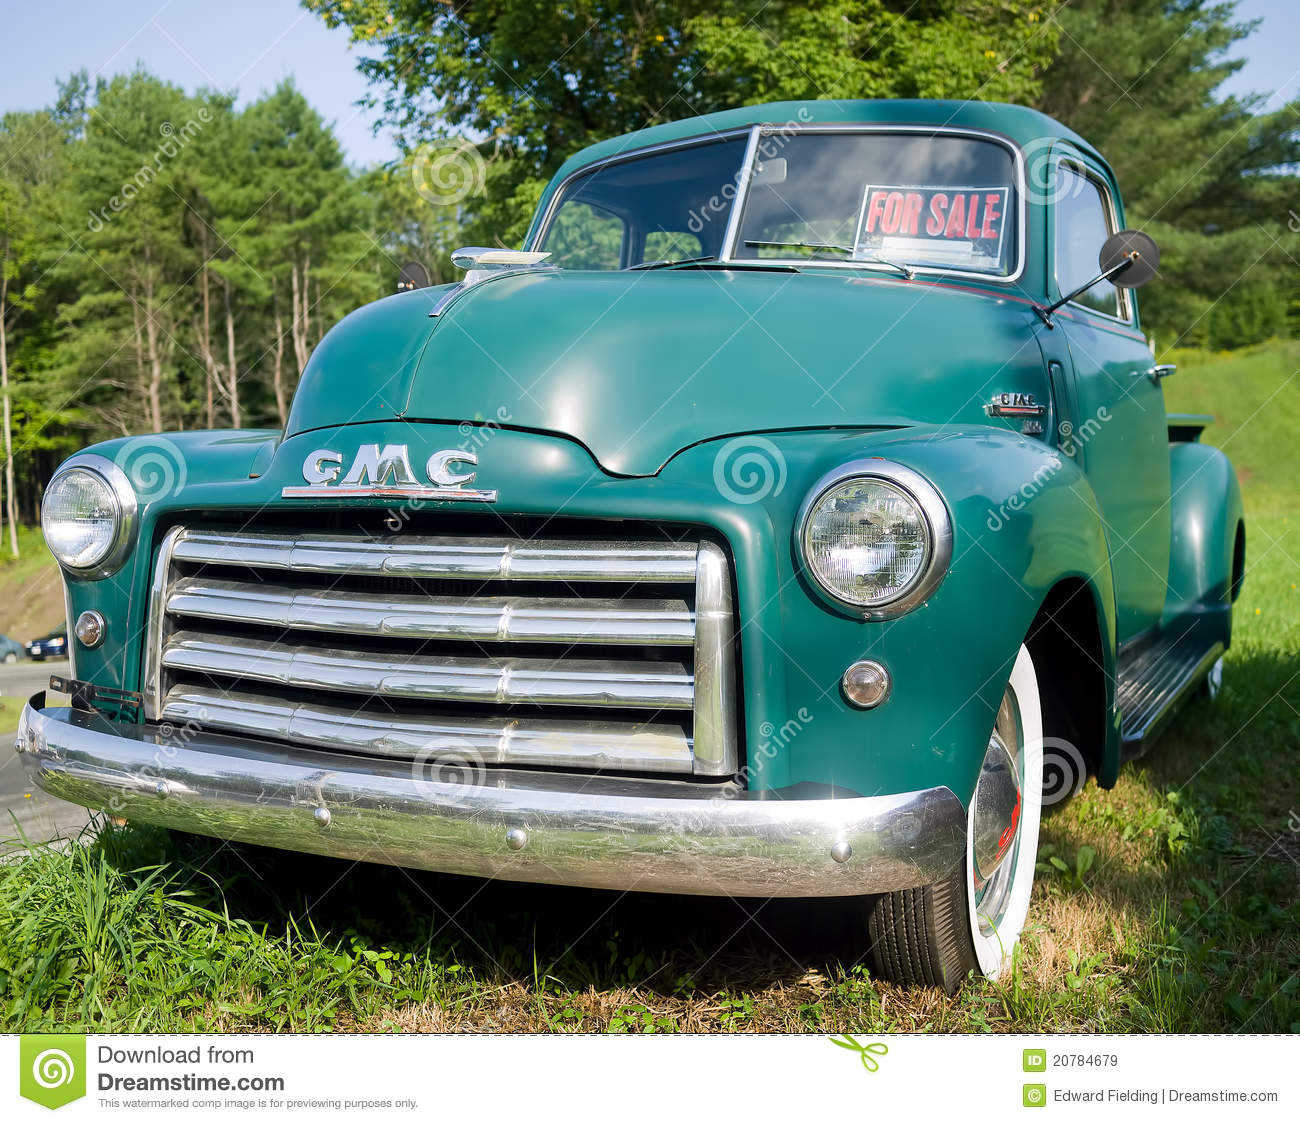 Vintage Truck Bed >> Vintage GMC Pickup Truck editorial stock image. Image of general - 20784679